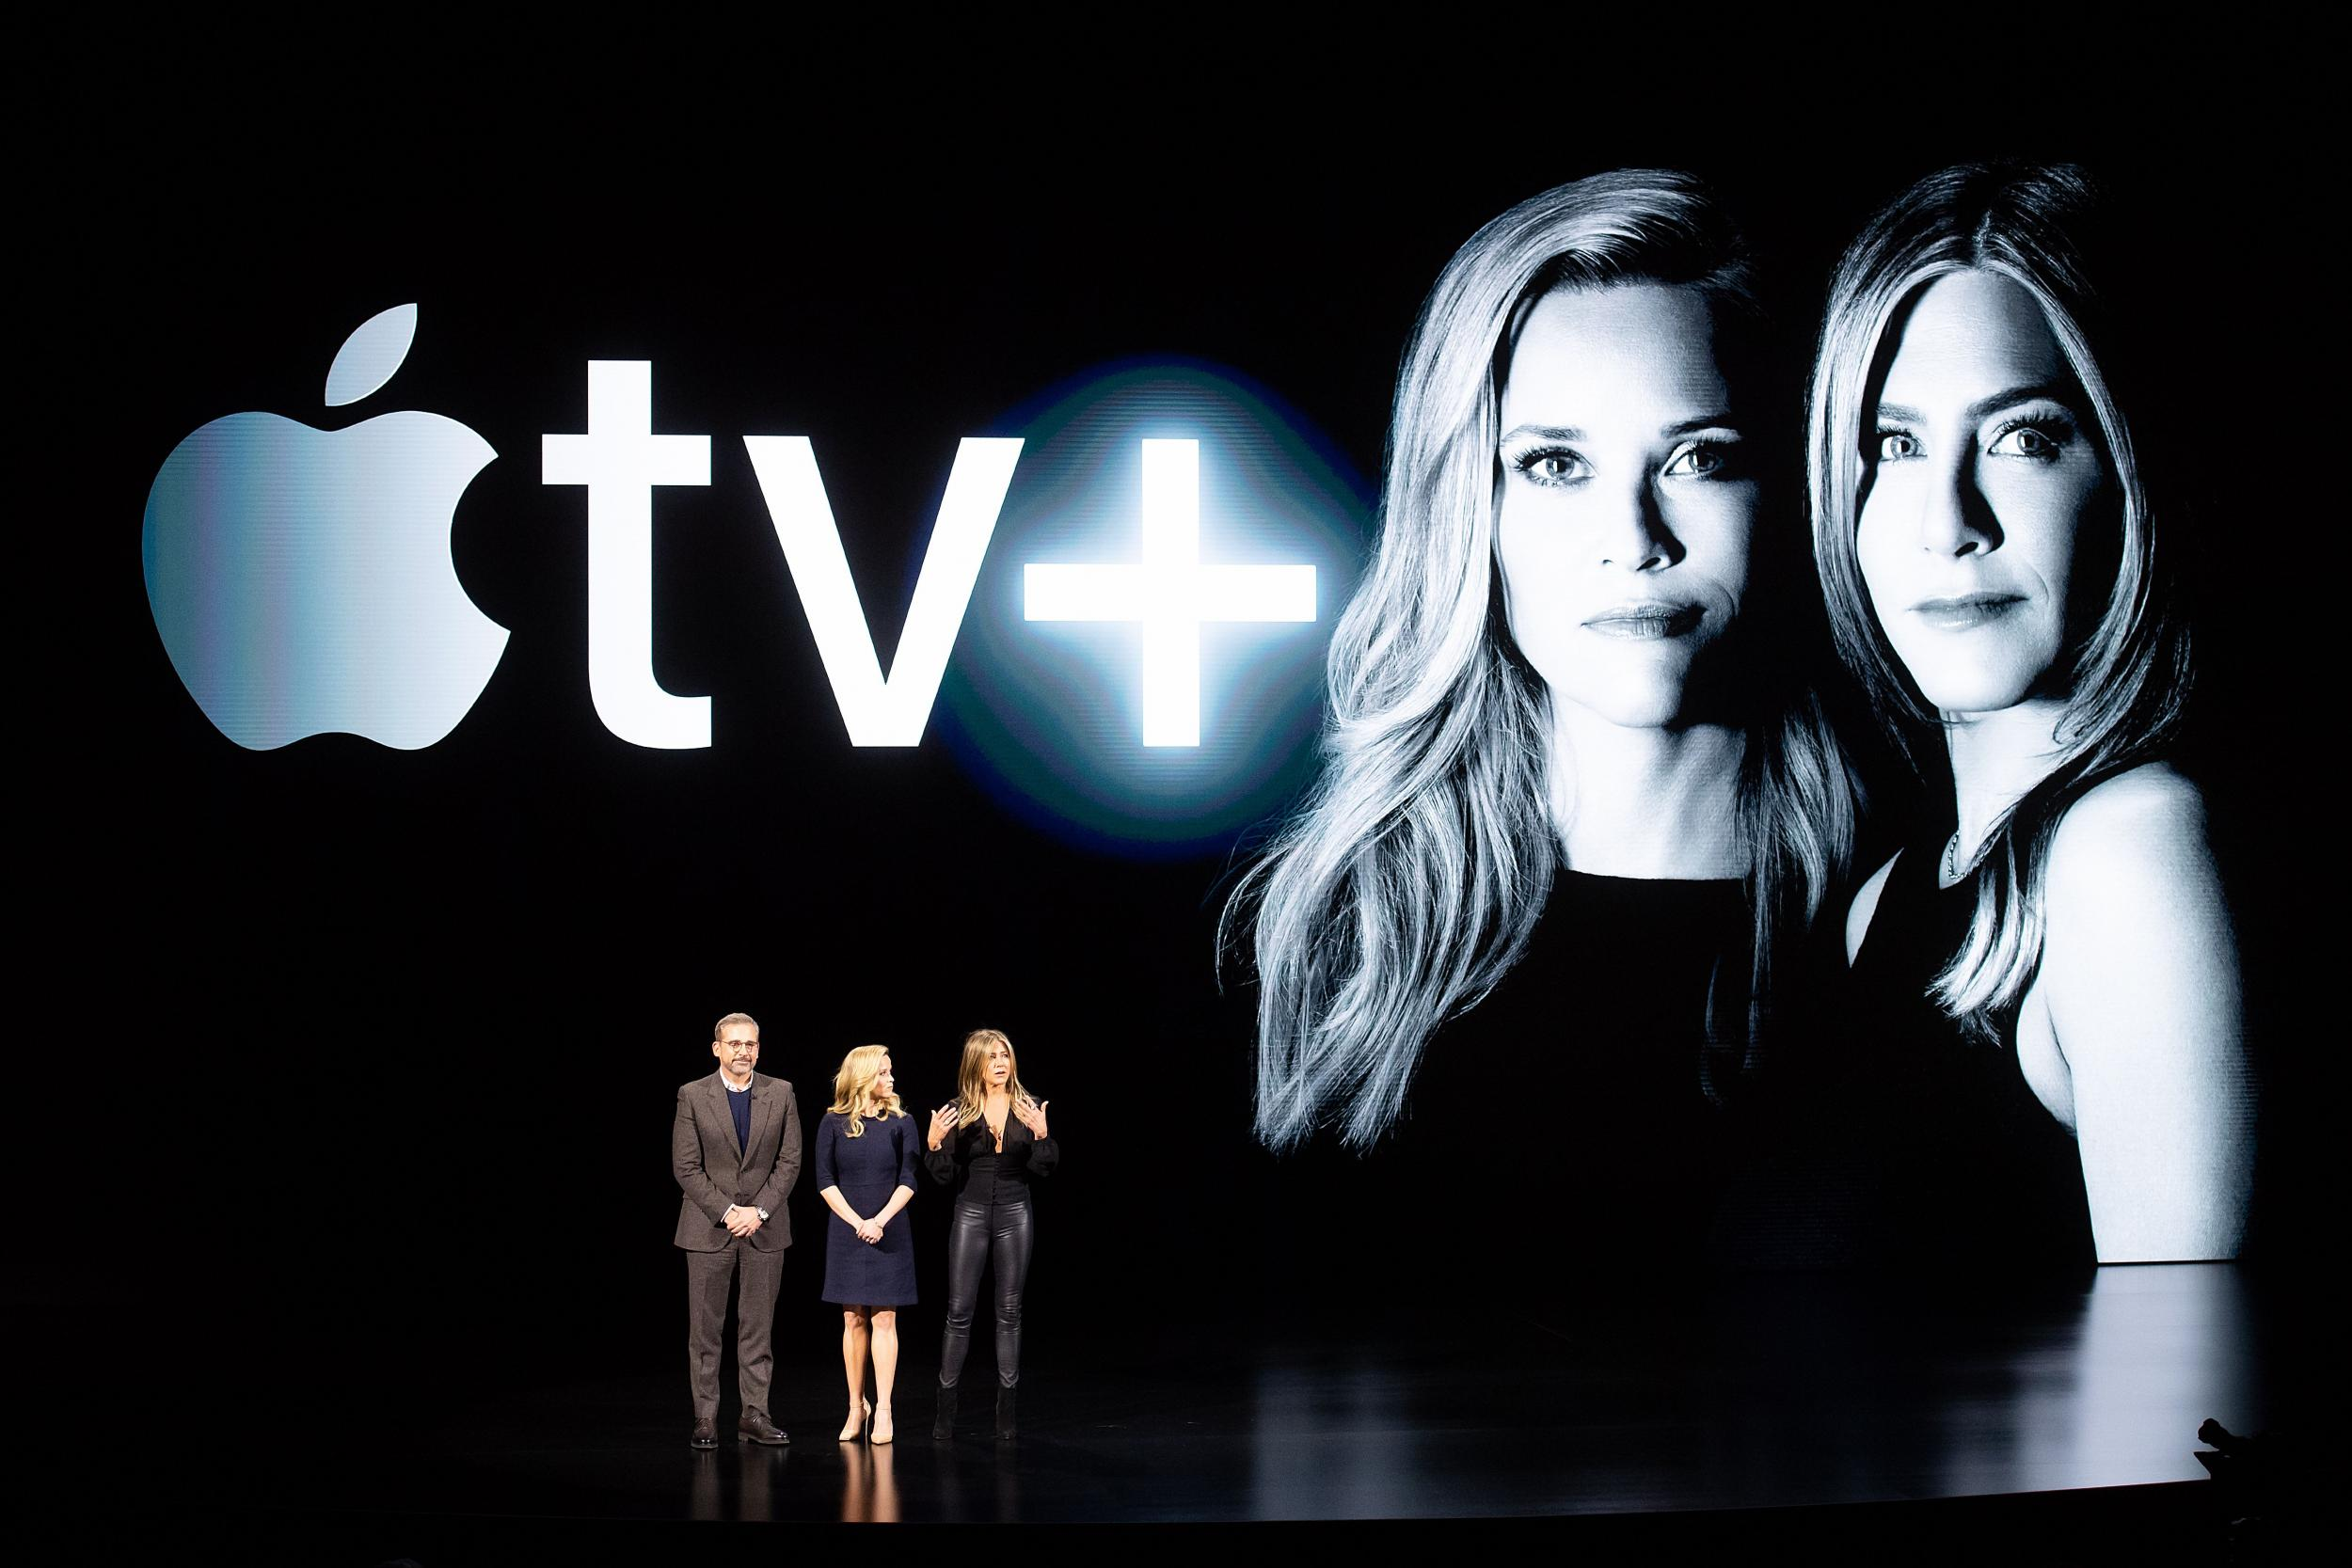 Apple TV+: When does it launch and which TV shows and films will be included?